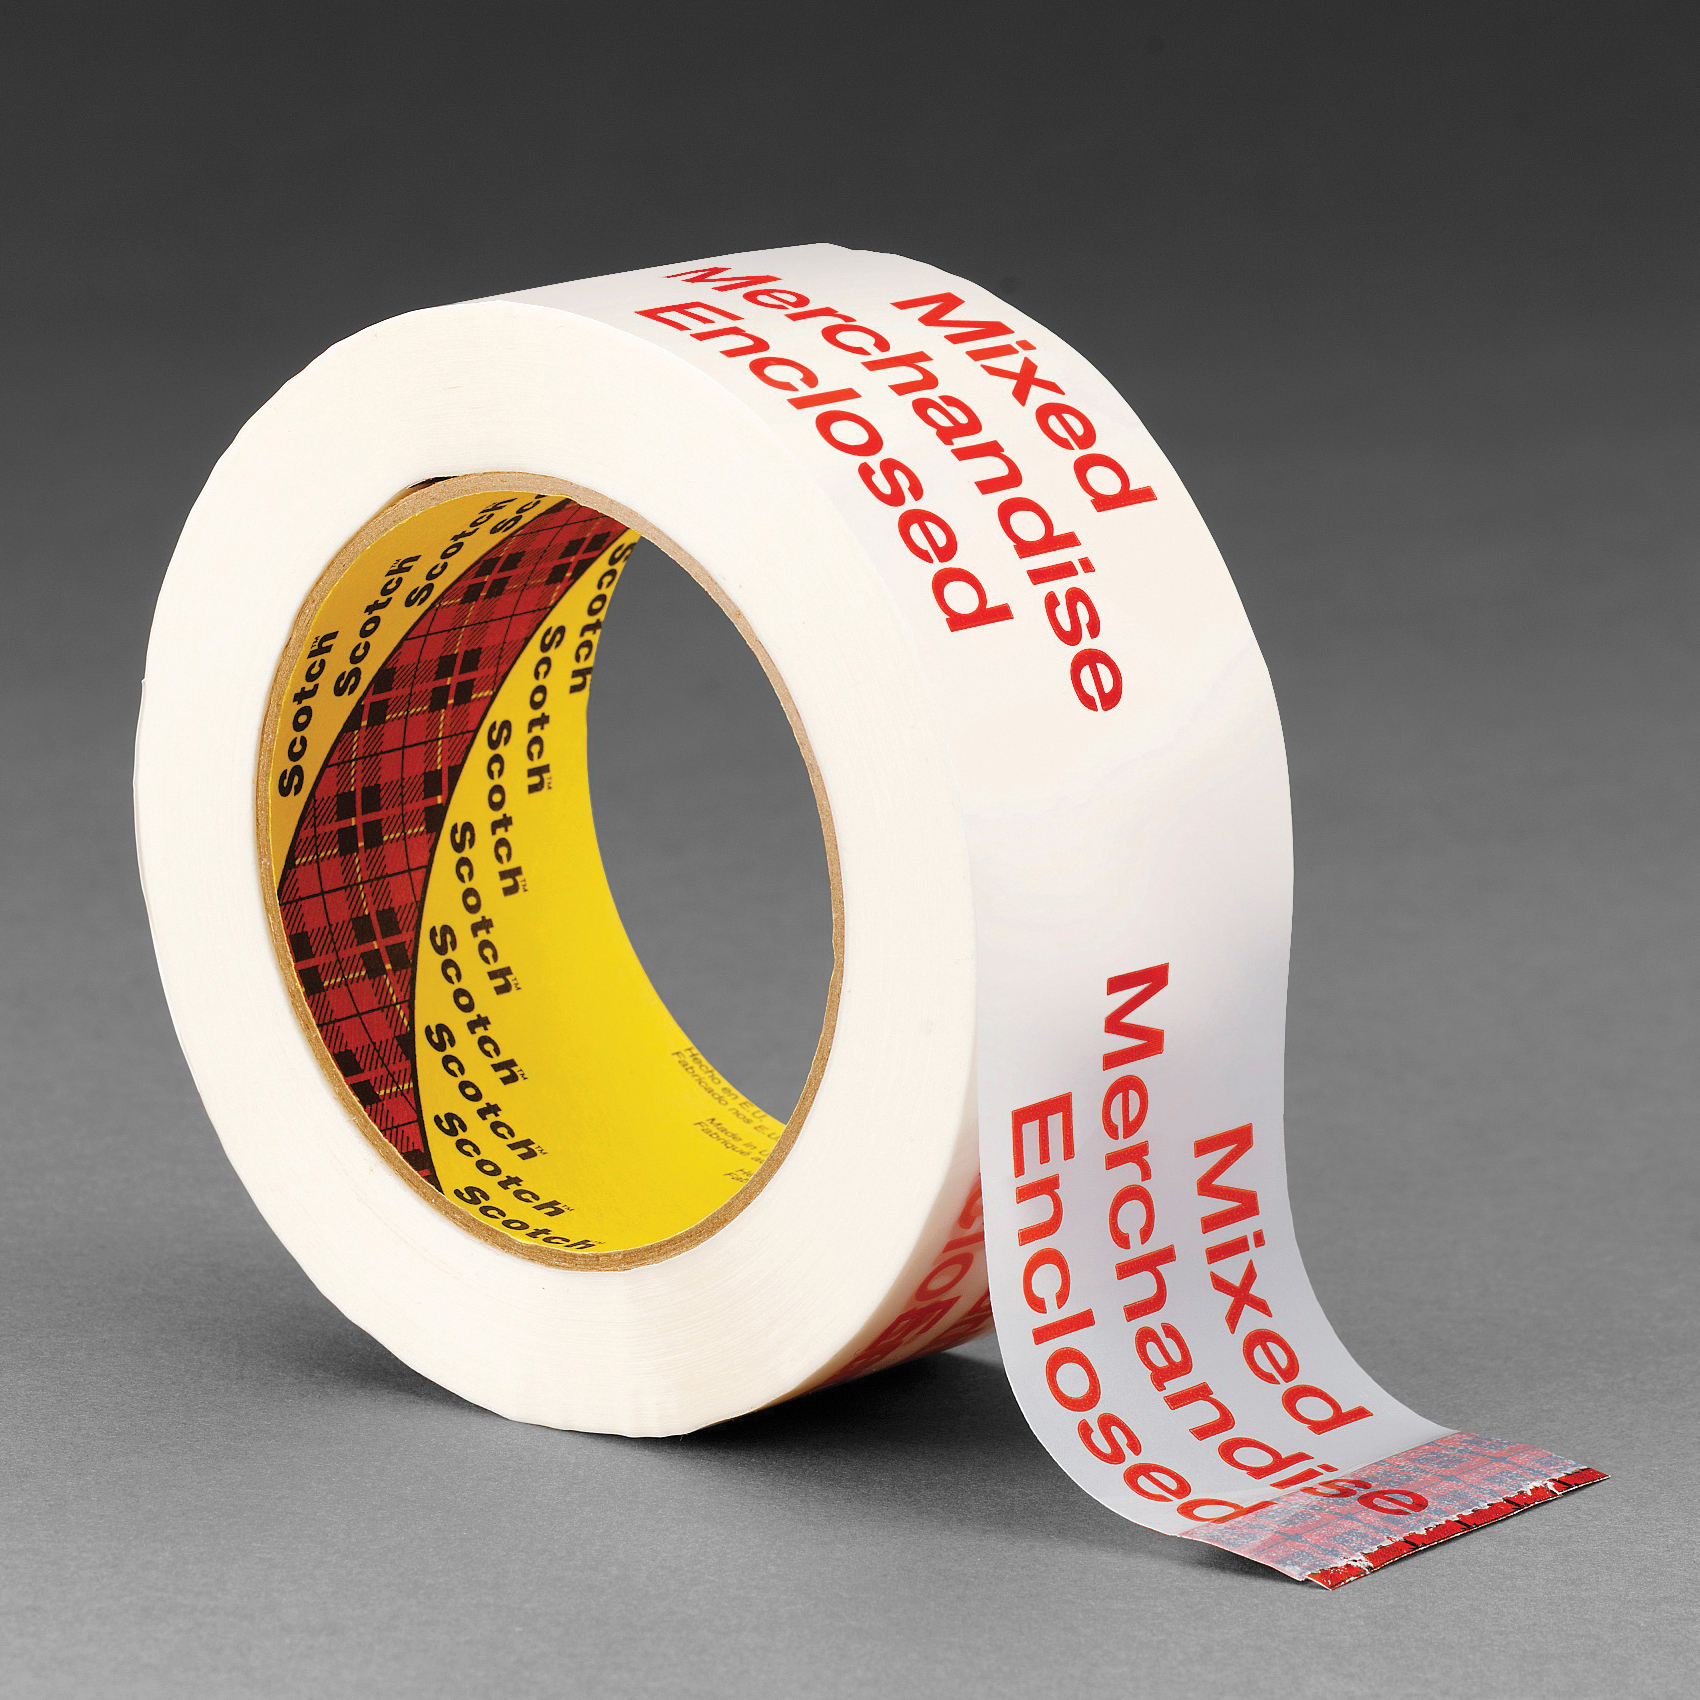 3M™ 3775 Printed Message Box Sealing Tape, 100 m L x 48 mm W, 1.8 mil THK, Hot Melt Synthetic Rubber Resin Adhesive, Polypropylene Film Backing, Red/White